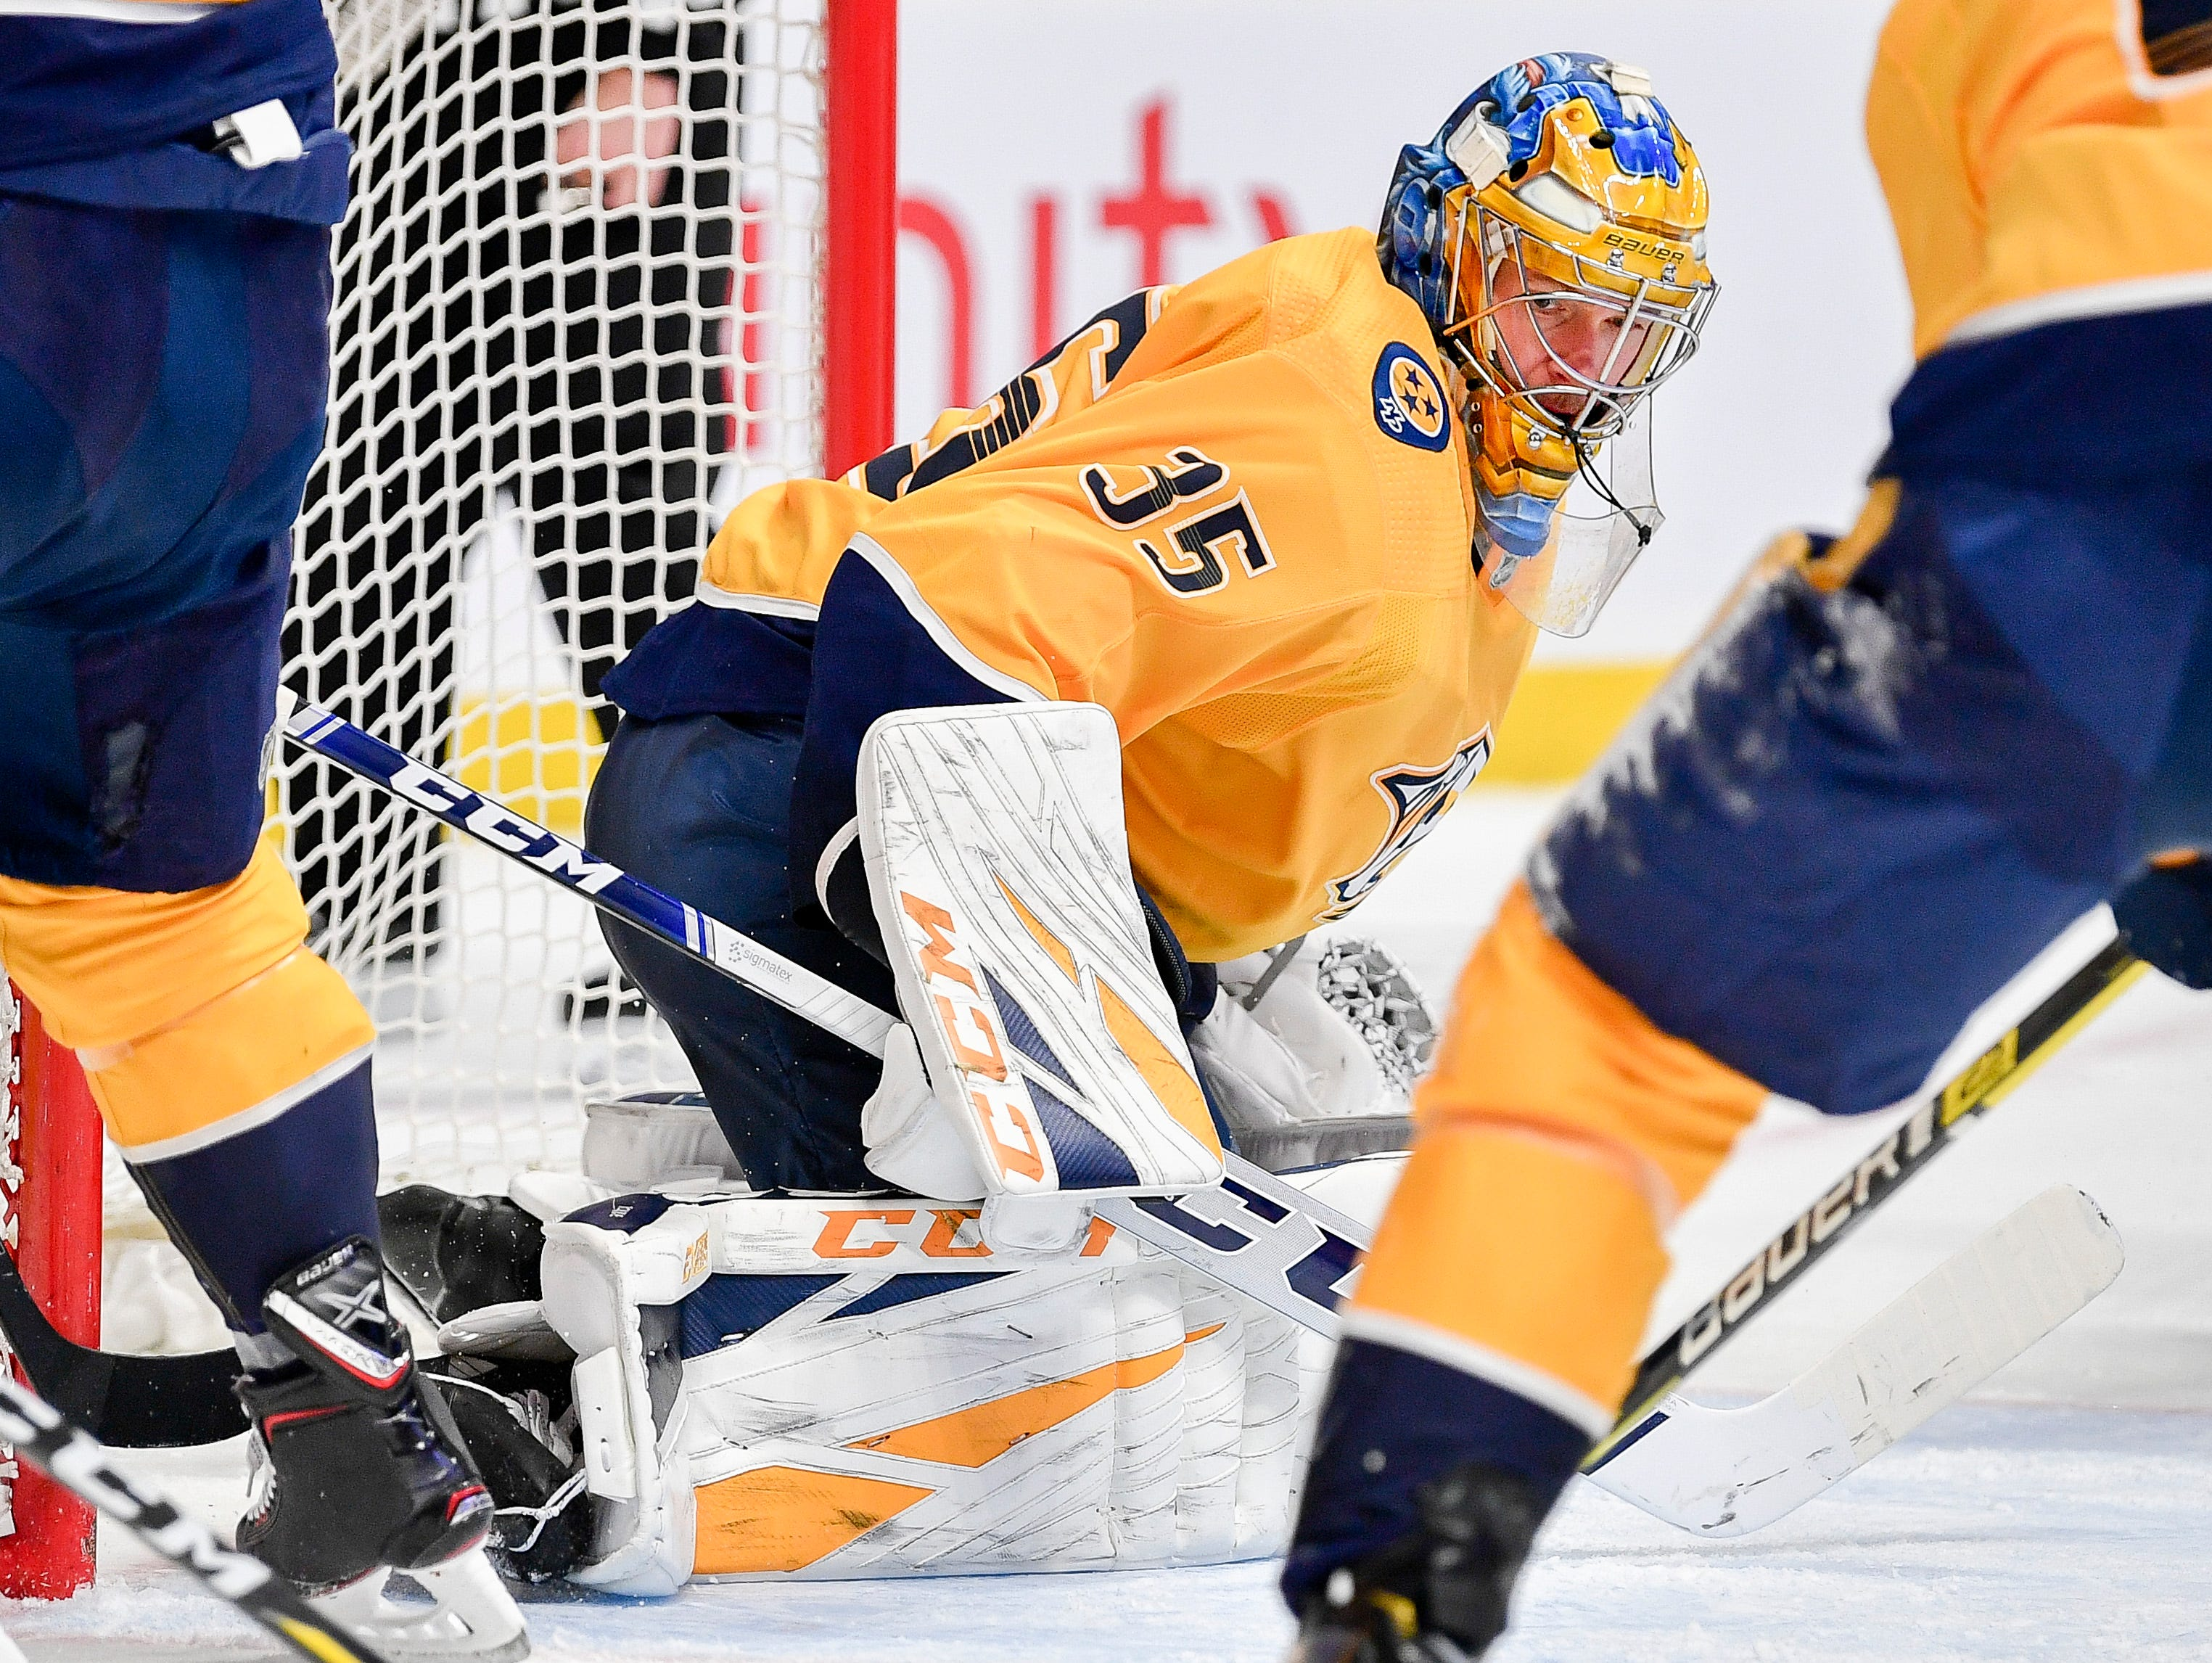 Nashville Predators goaltender Pekka Rinne (35) keeps his eye on the puck during the second period against the Arizona Coyotes at Bridgestone Arena in Nashville, Tenn., Tuesday, Feb. 5, 2019.